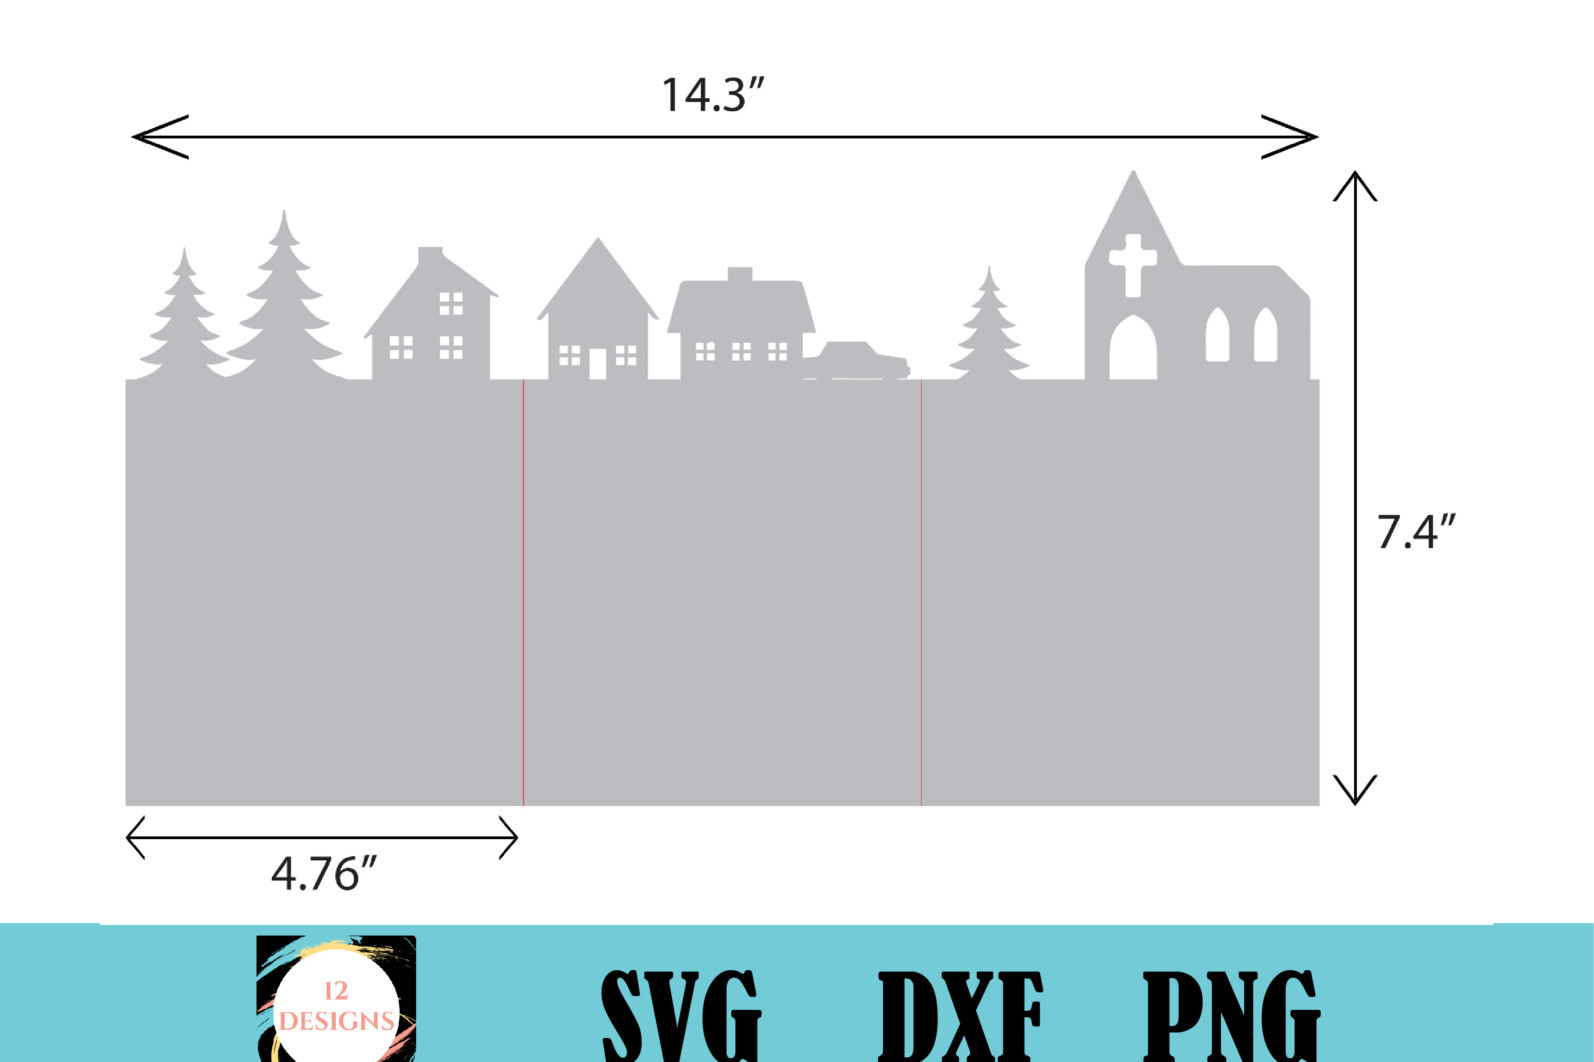 Christmas town scene trifold card - Christmas town scene 01 1 scaled -